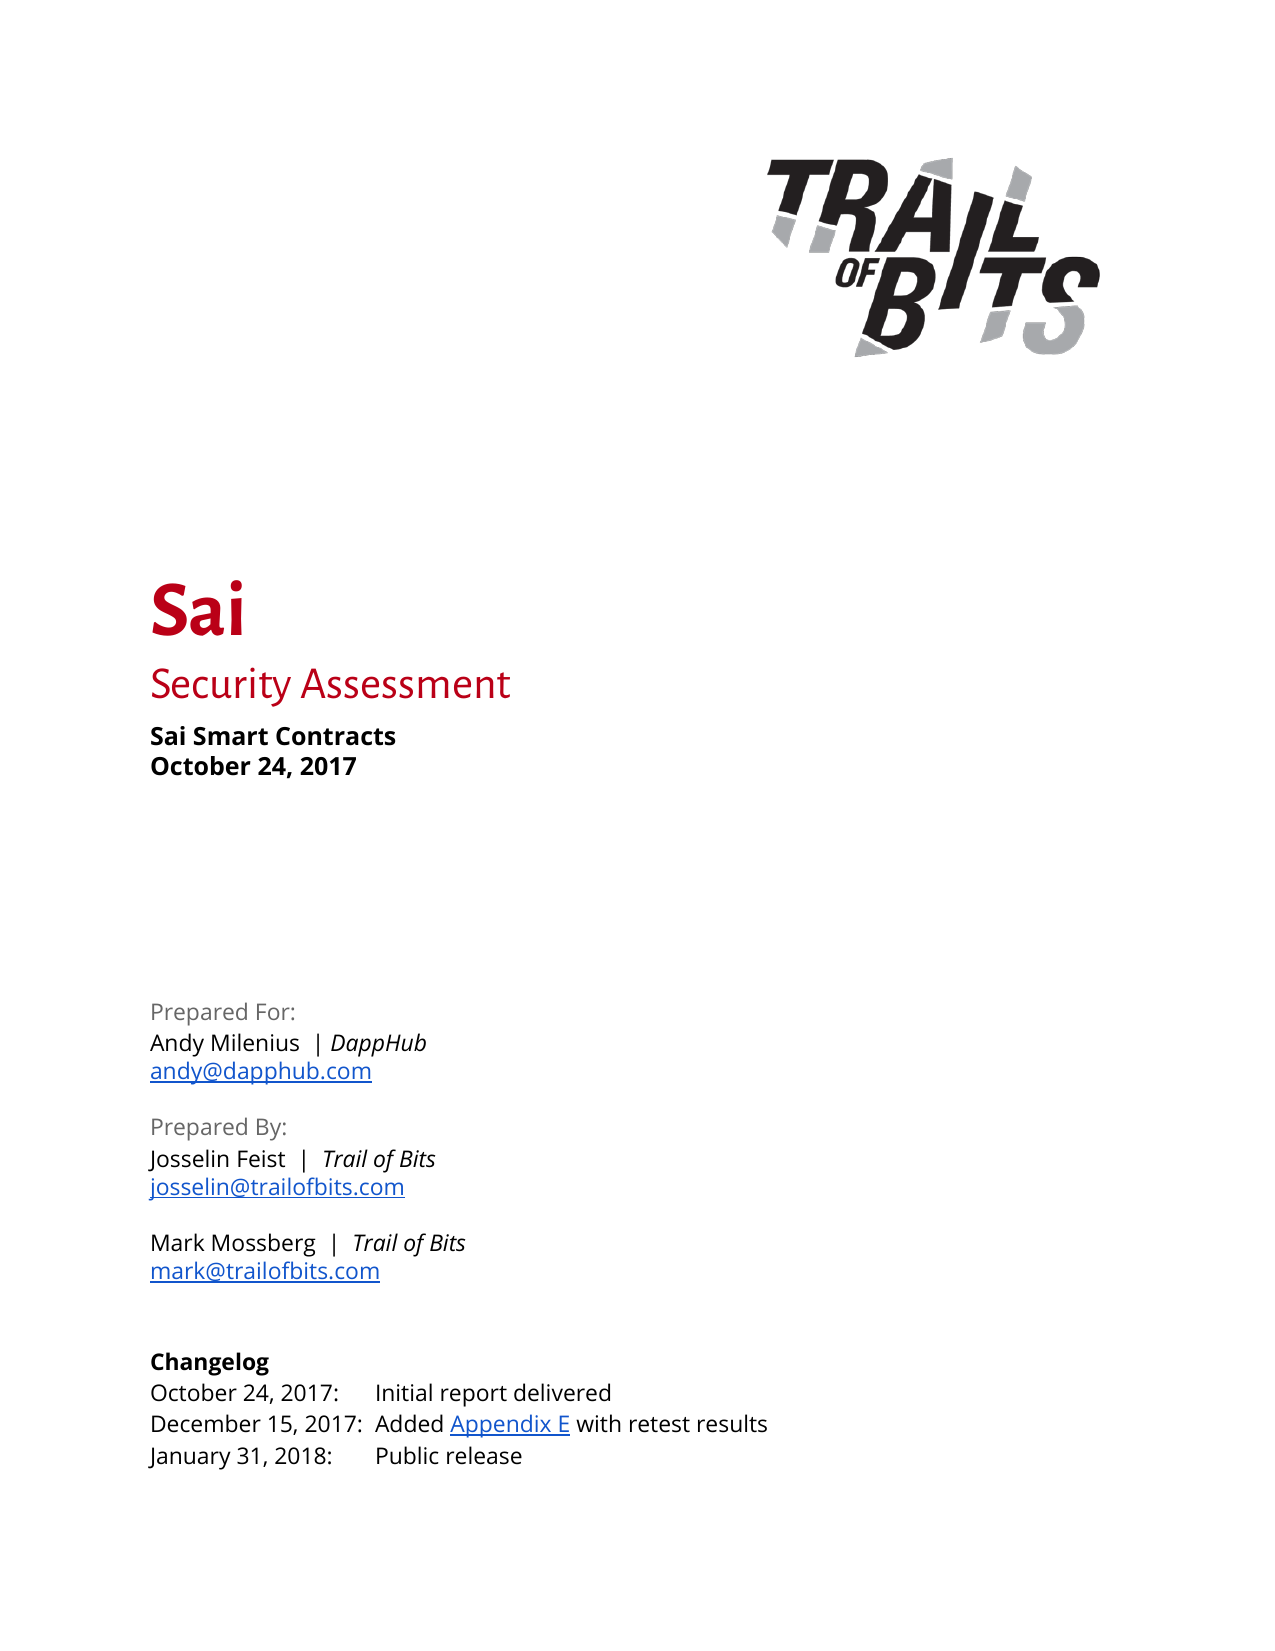 First page of the 'sai' PDF